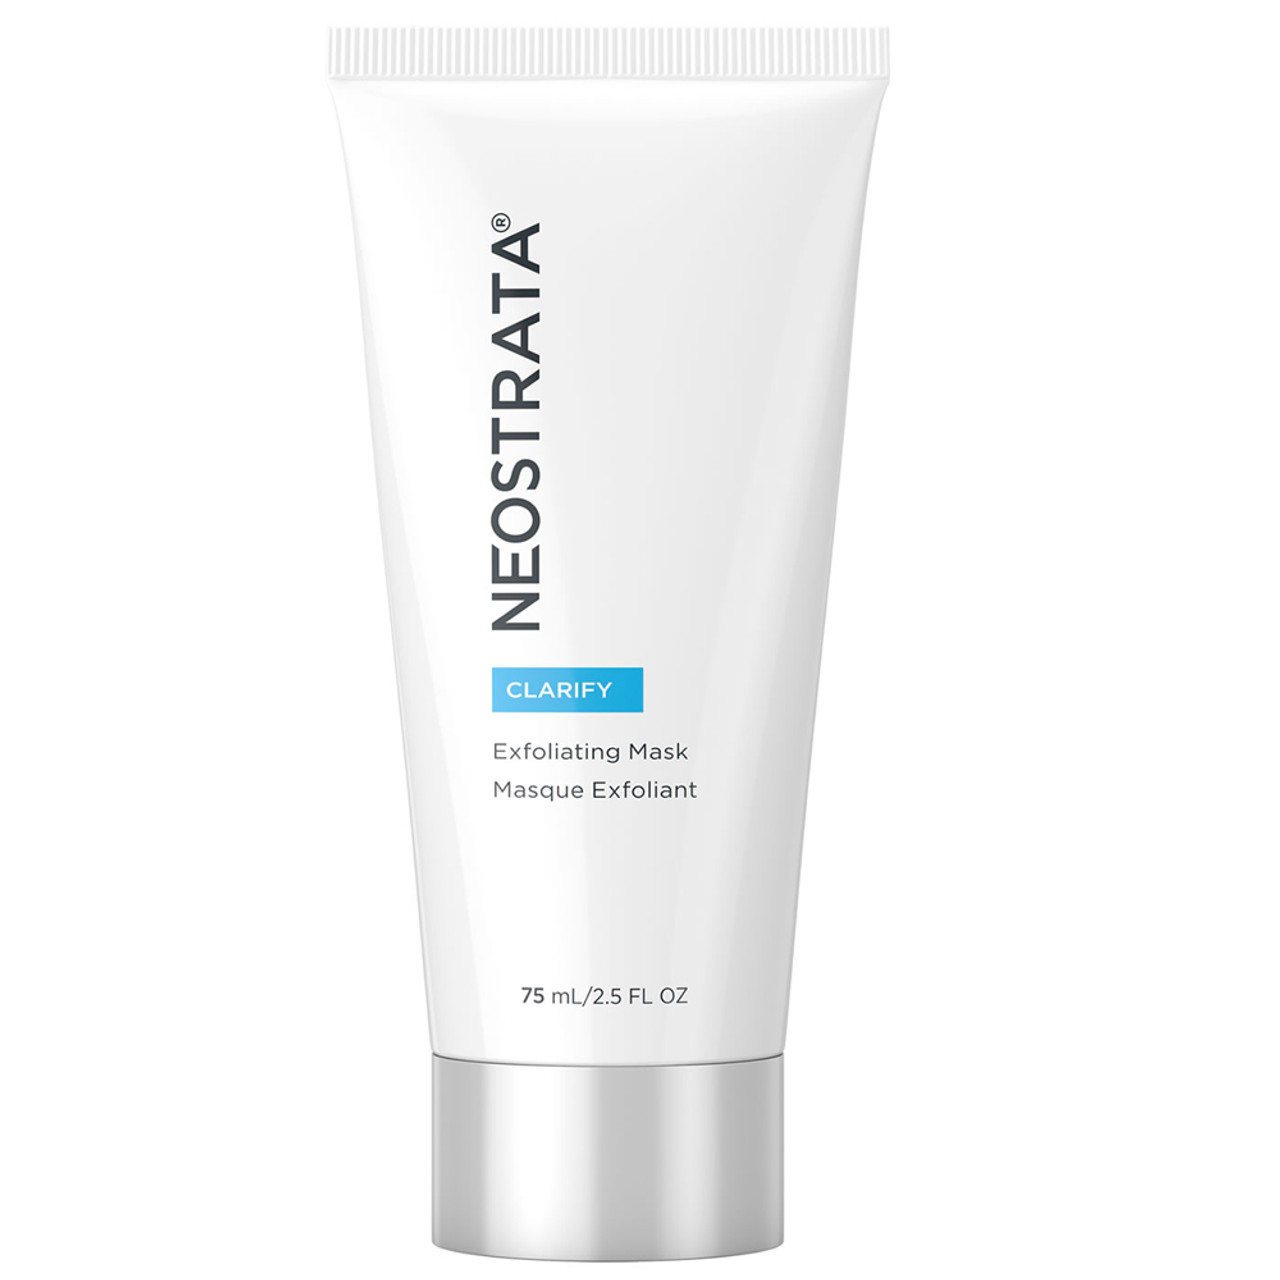 NeoStrata Exfoliating Mask